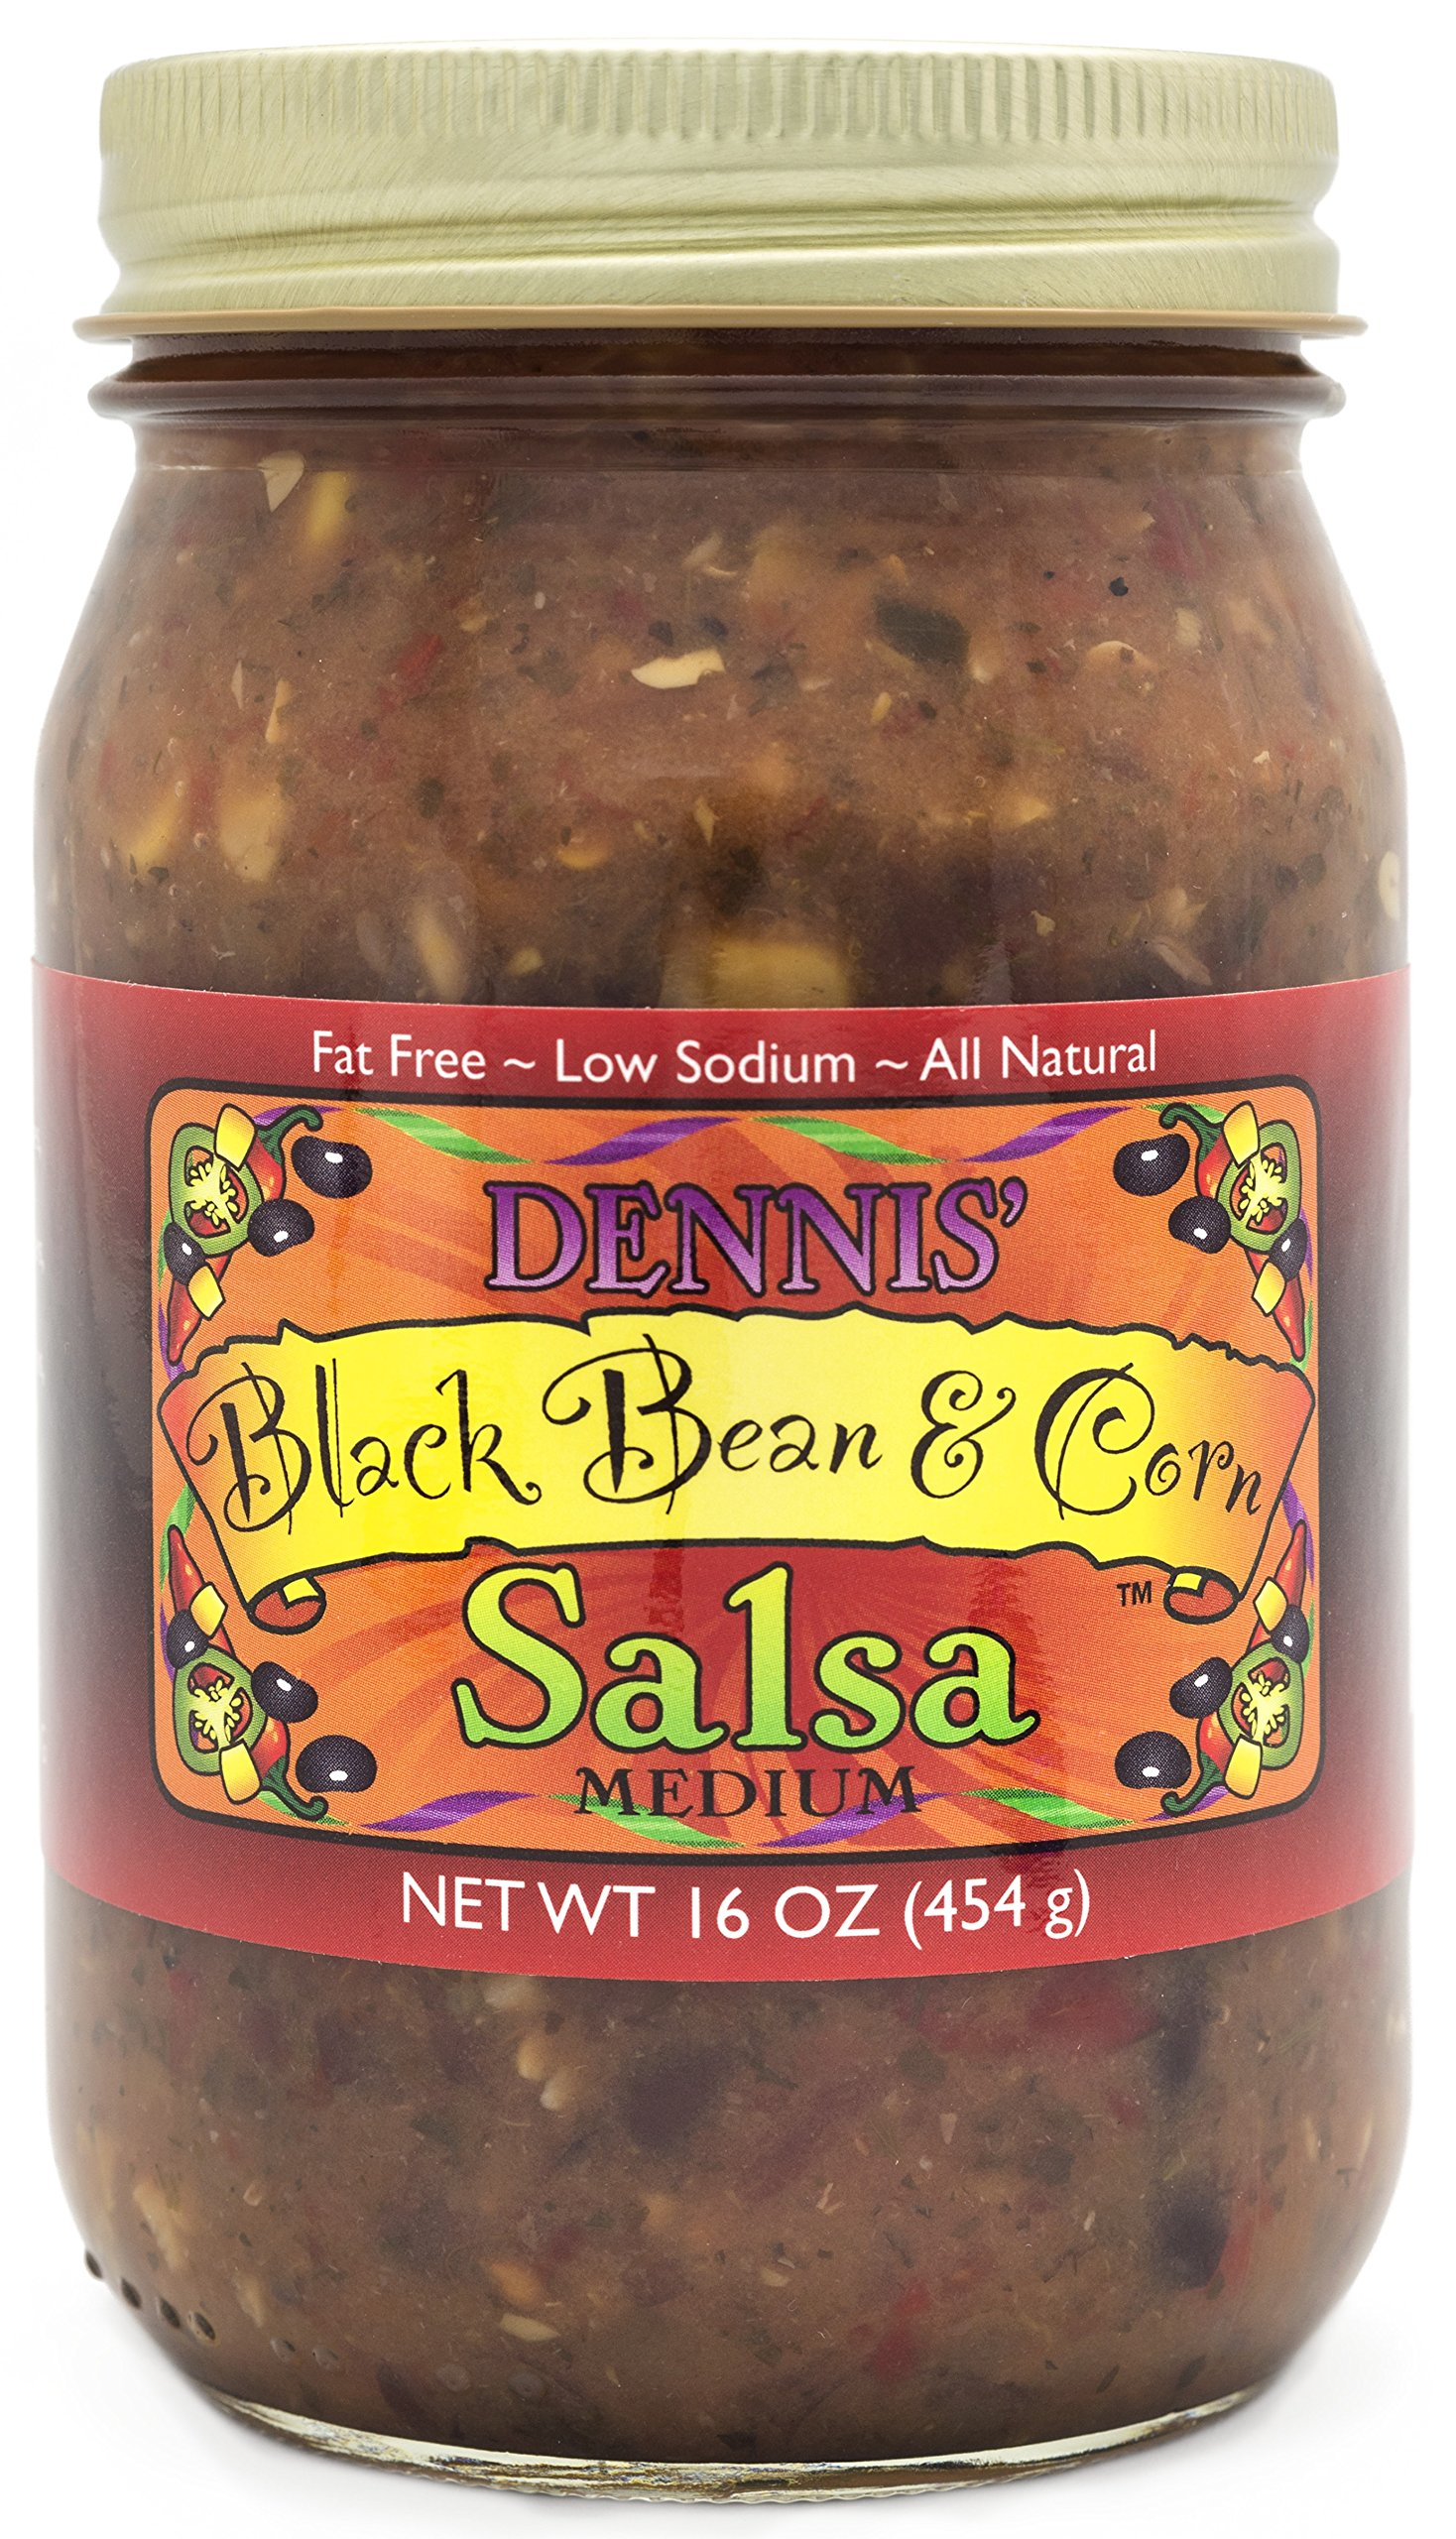 All-Natural Black Bean and Corn Salsa by Dennis' Gourmet | This Fresh, Hearty Restaurant Salsa is Low Sugar, Low Cal, Low Carb, Low Sodium, and Gluten Free! Includes (1) Large 16 oz Jar (Black Bean) by Dennis' Gourmet